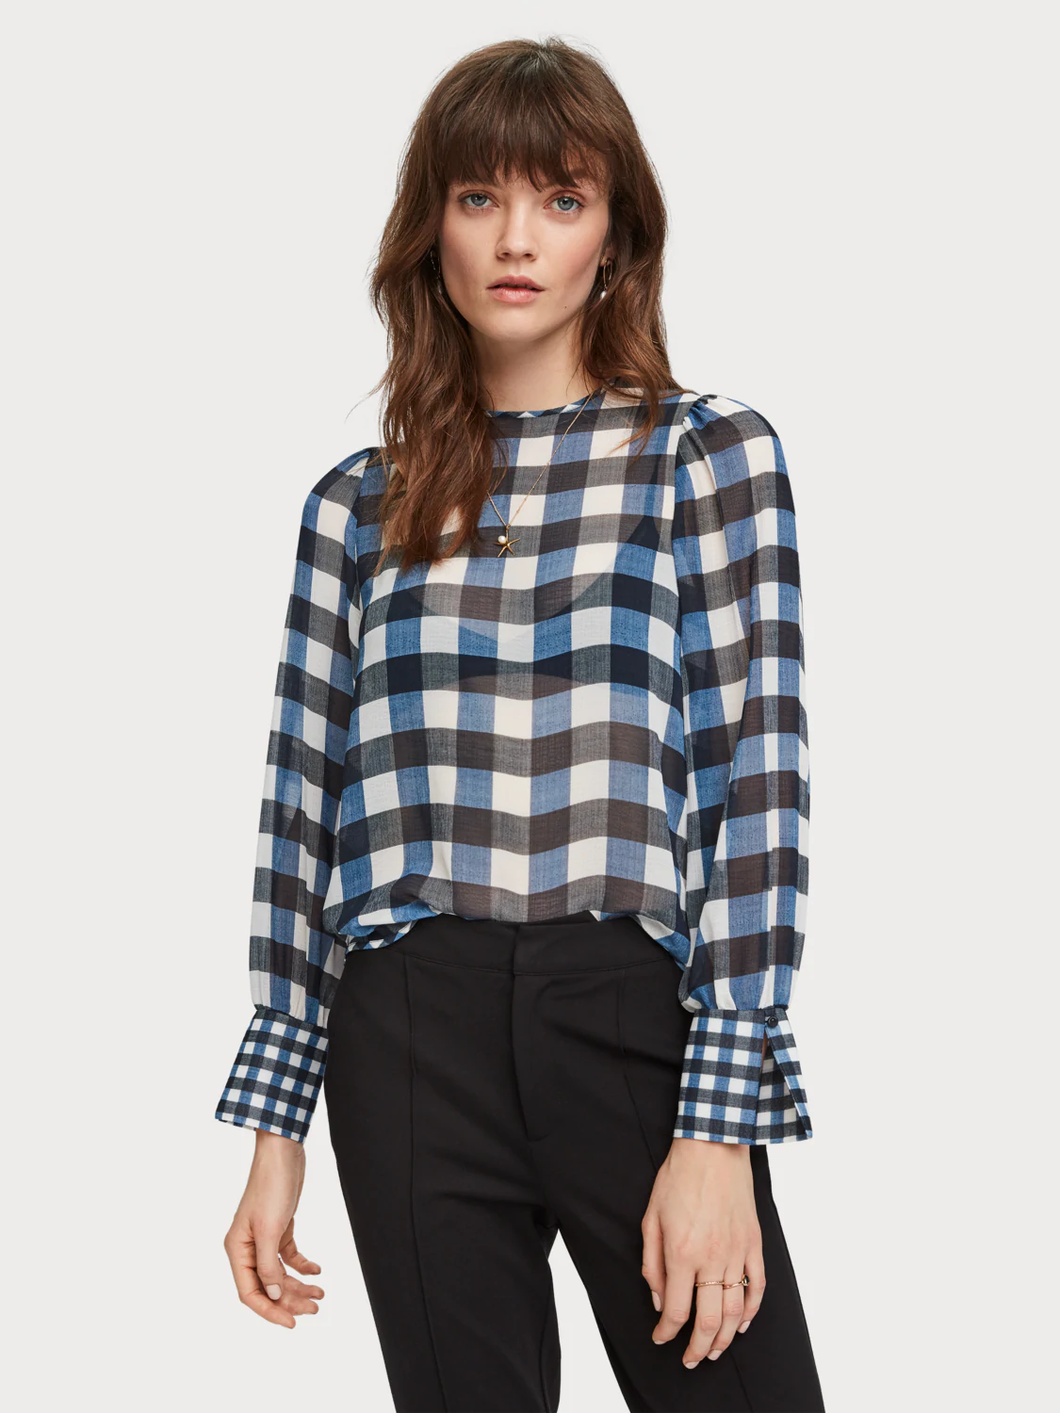 SCOTCH AND SODA WOMEN'S SHEER CHECKED TOP